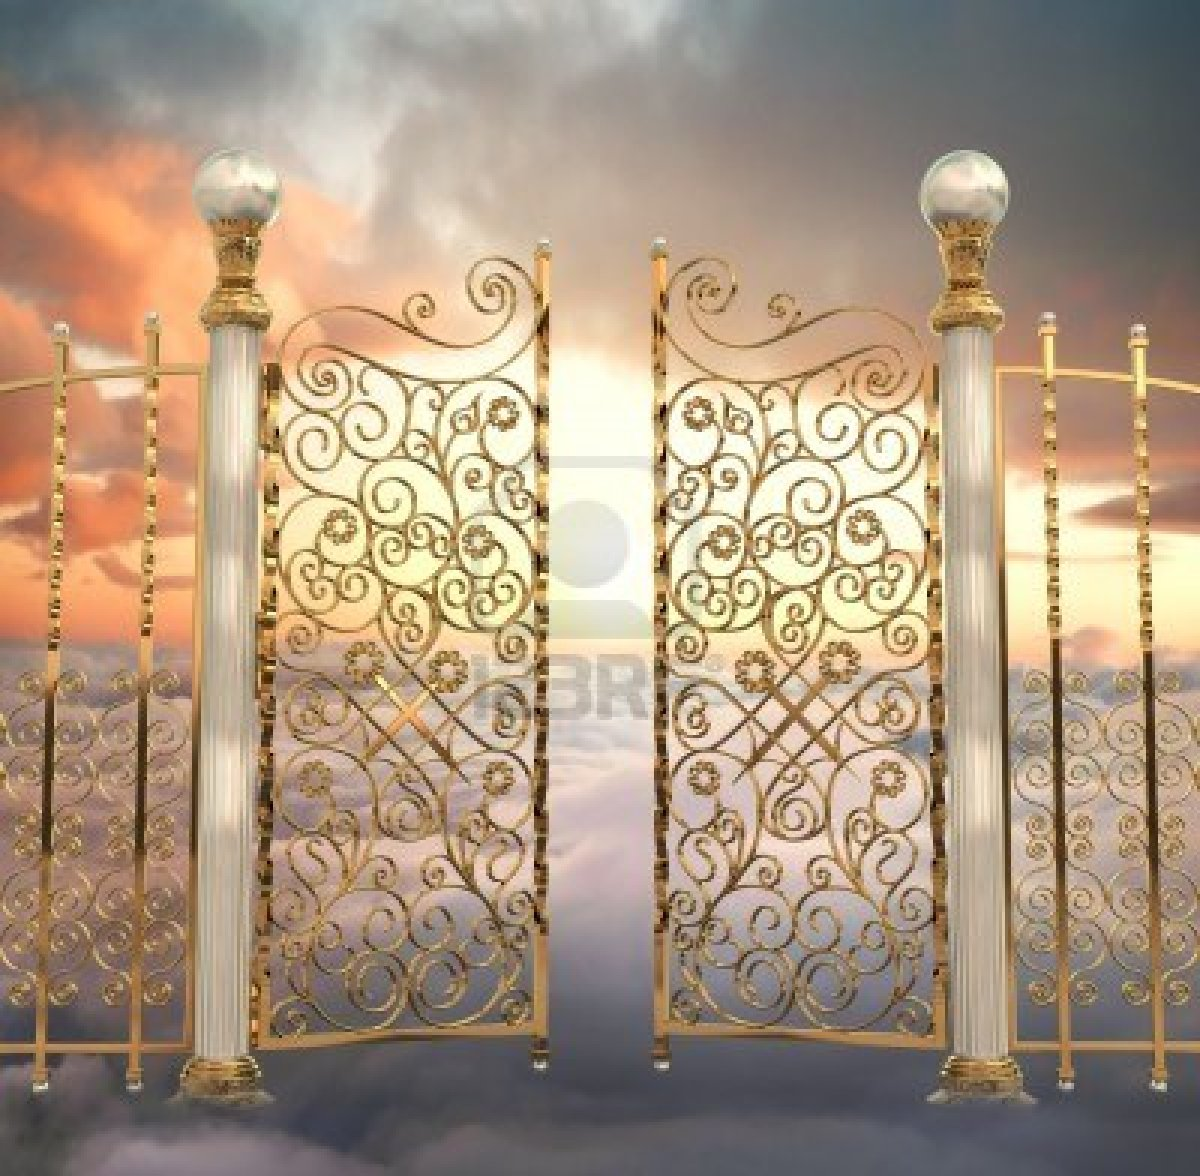 7059347-the-pearly-gates-of-heaven-being-opened